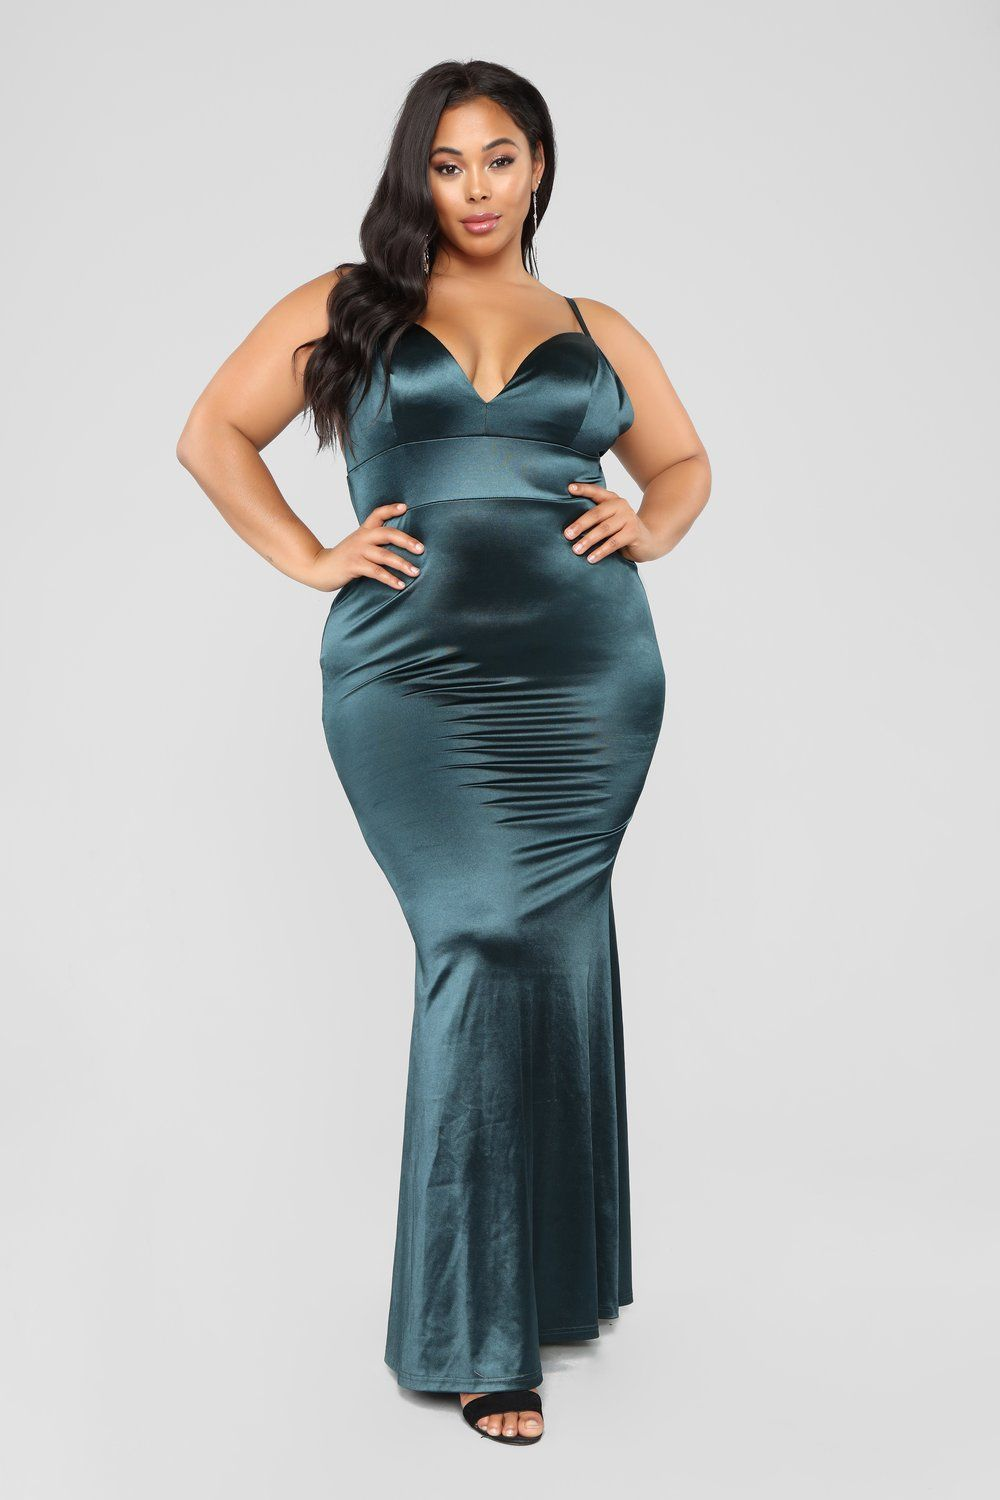 b72959abae609 Taken By Her Beauty Mermaid Dress - Teal